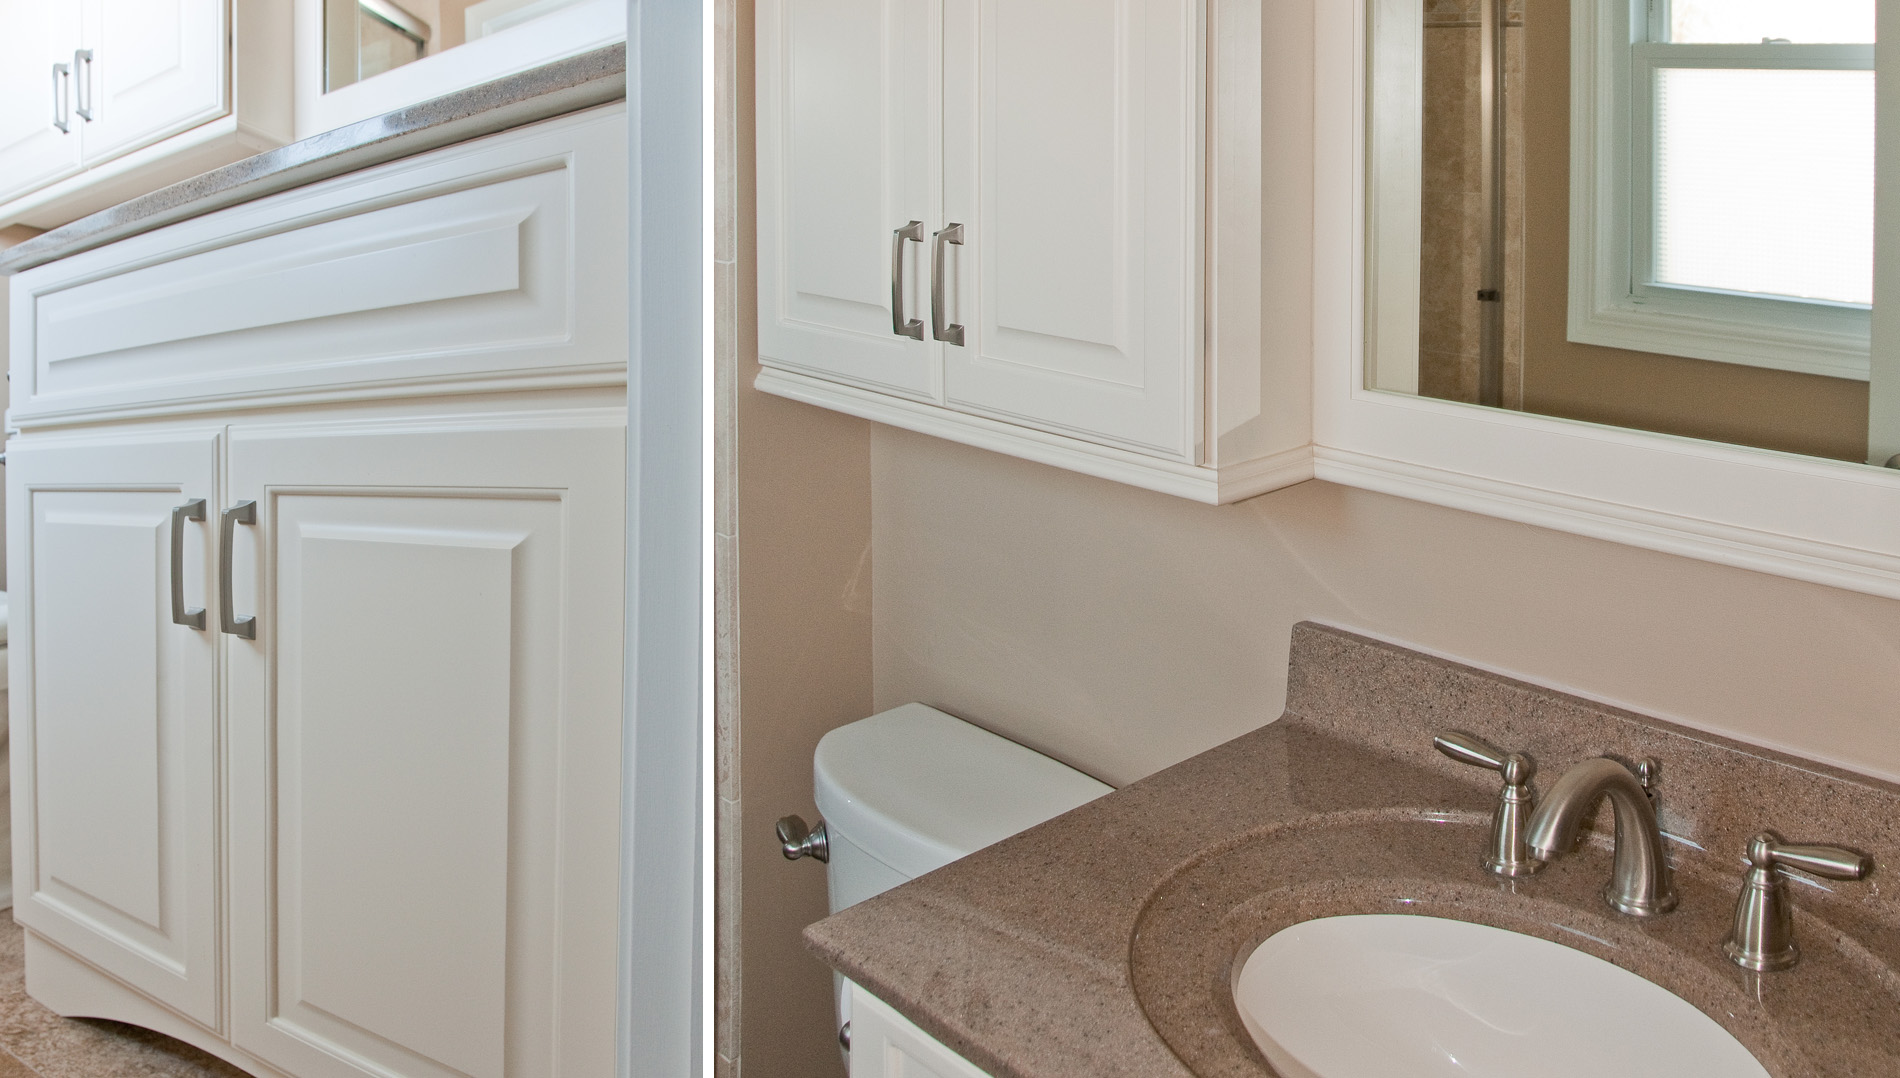 Kitchen Bathroom Remodeling Gallery Naperville Aurora Wheaton - Bathroom remodeling wheaton il